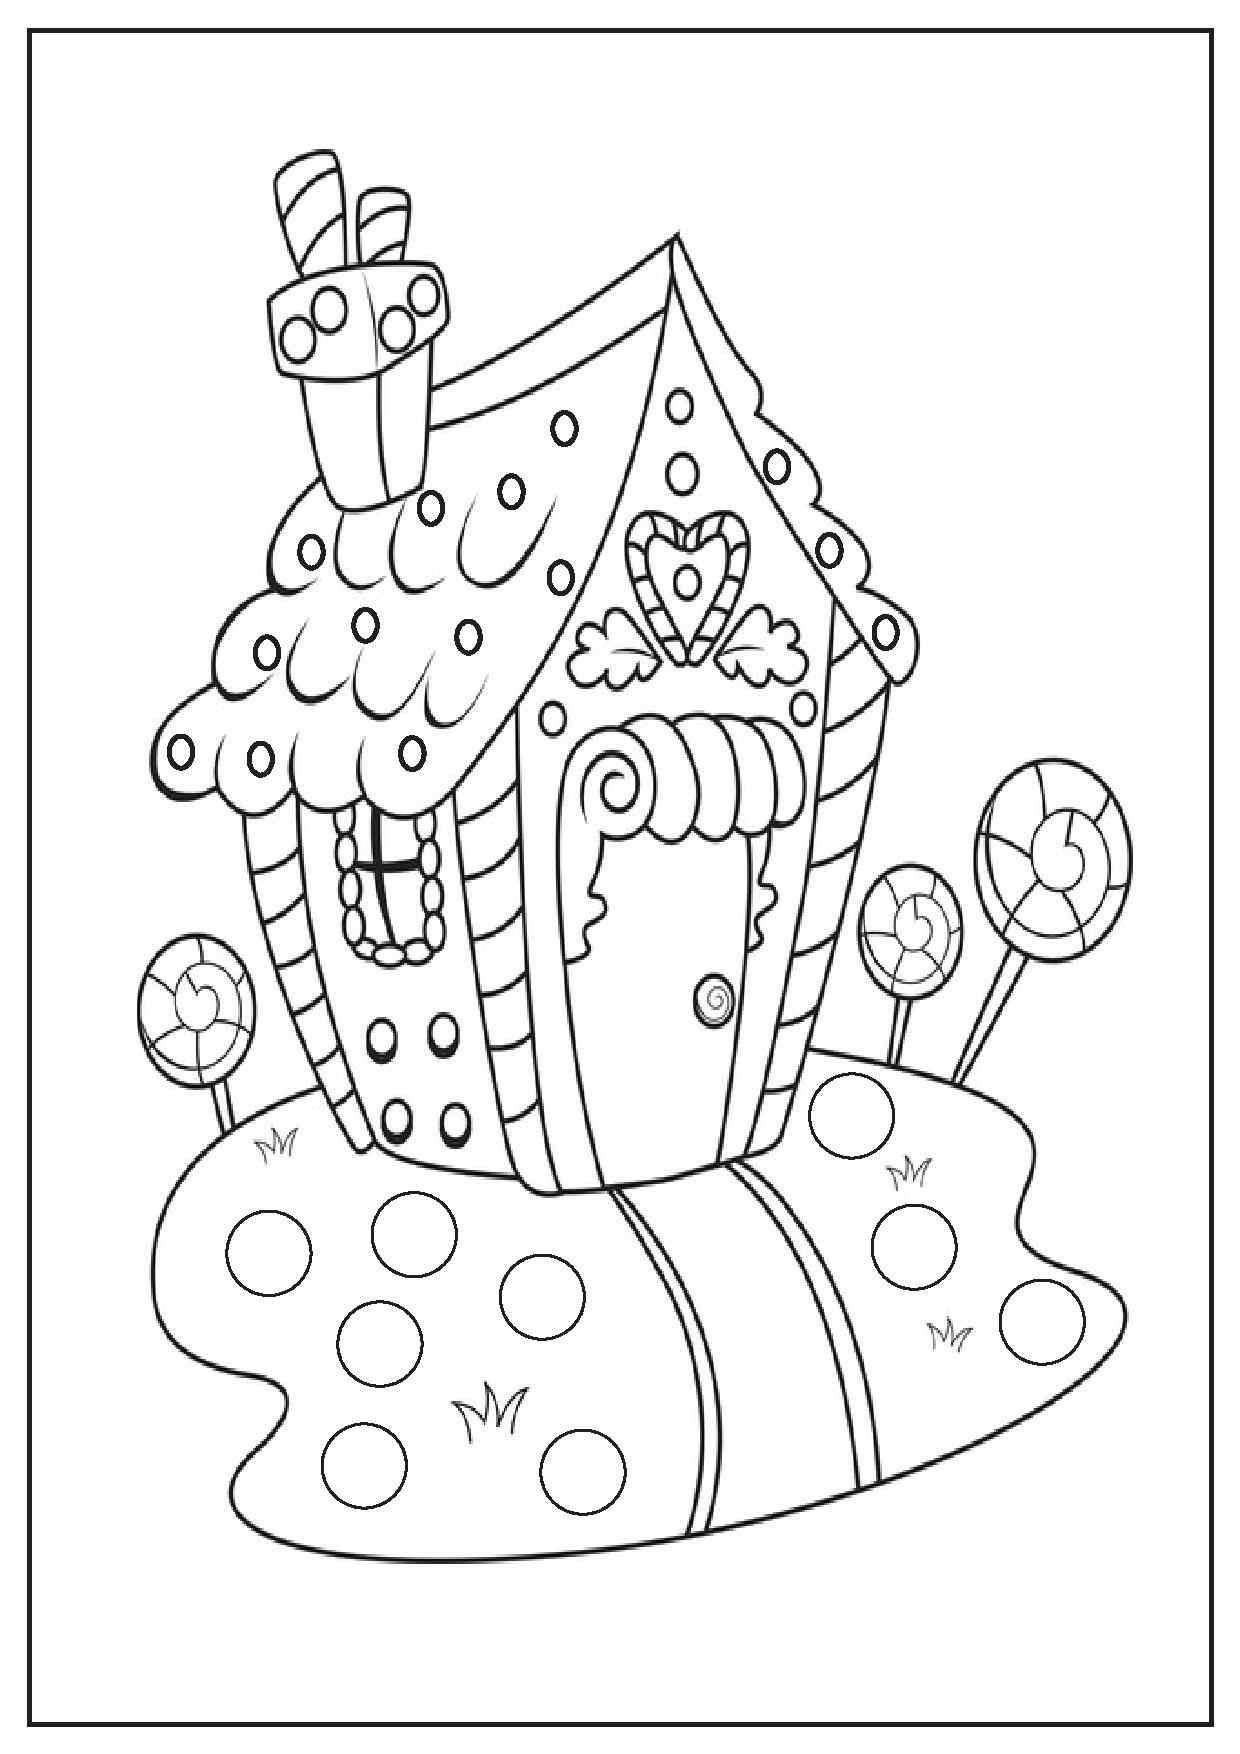 Uncategorized Christmas Printables Coloring Pages christmas worksheets coloring pages printables printables